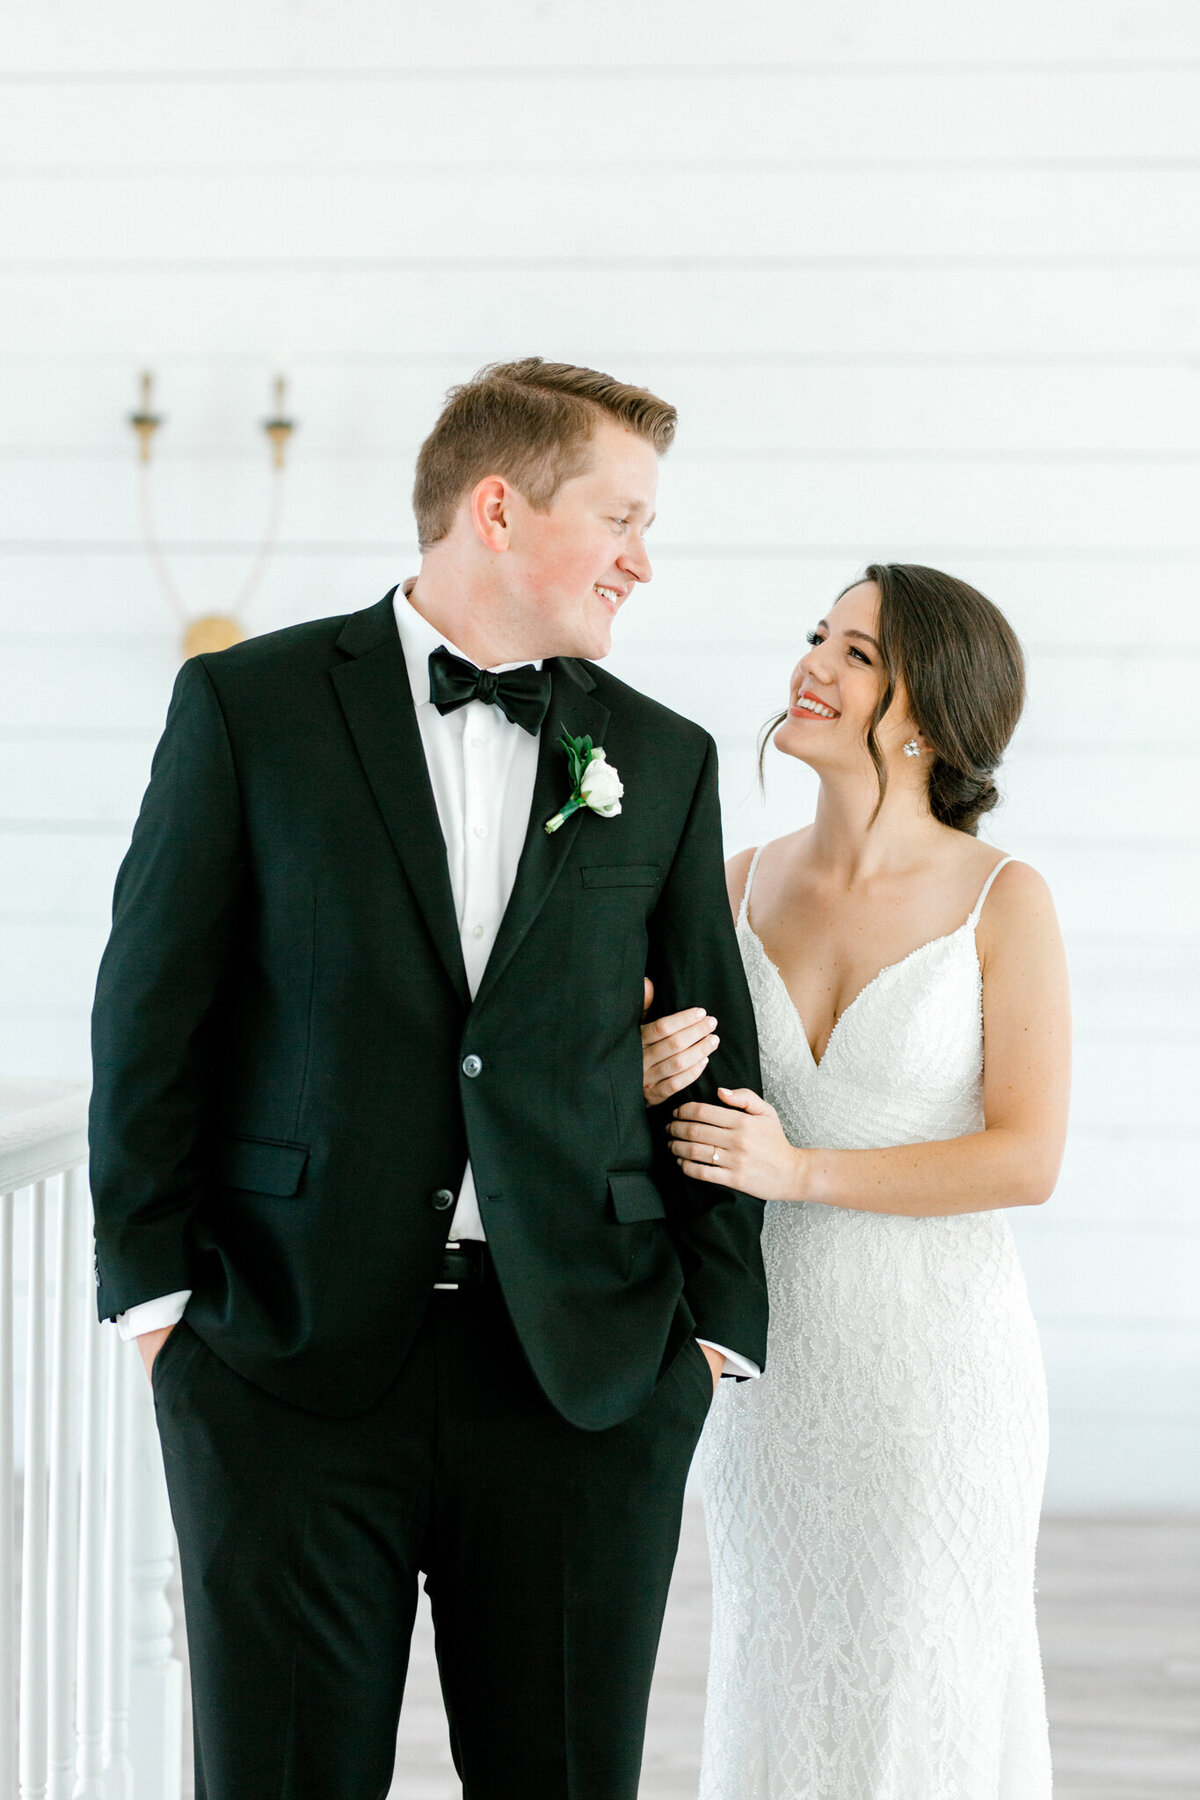 Anna & Billy's Wedding at The Nest at Ruth Farms | Dallas Wedding Photographer | Sami Kathryn Photography-103